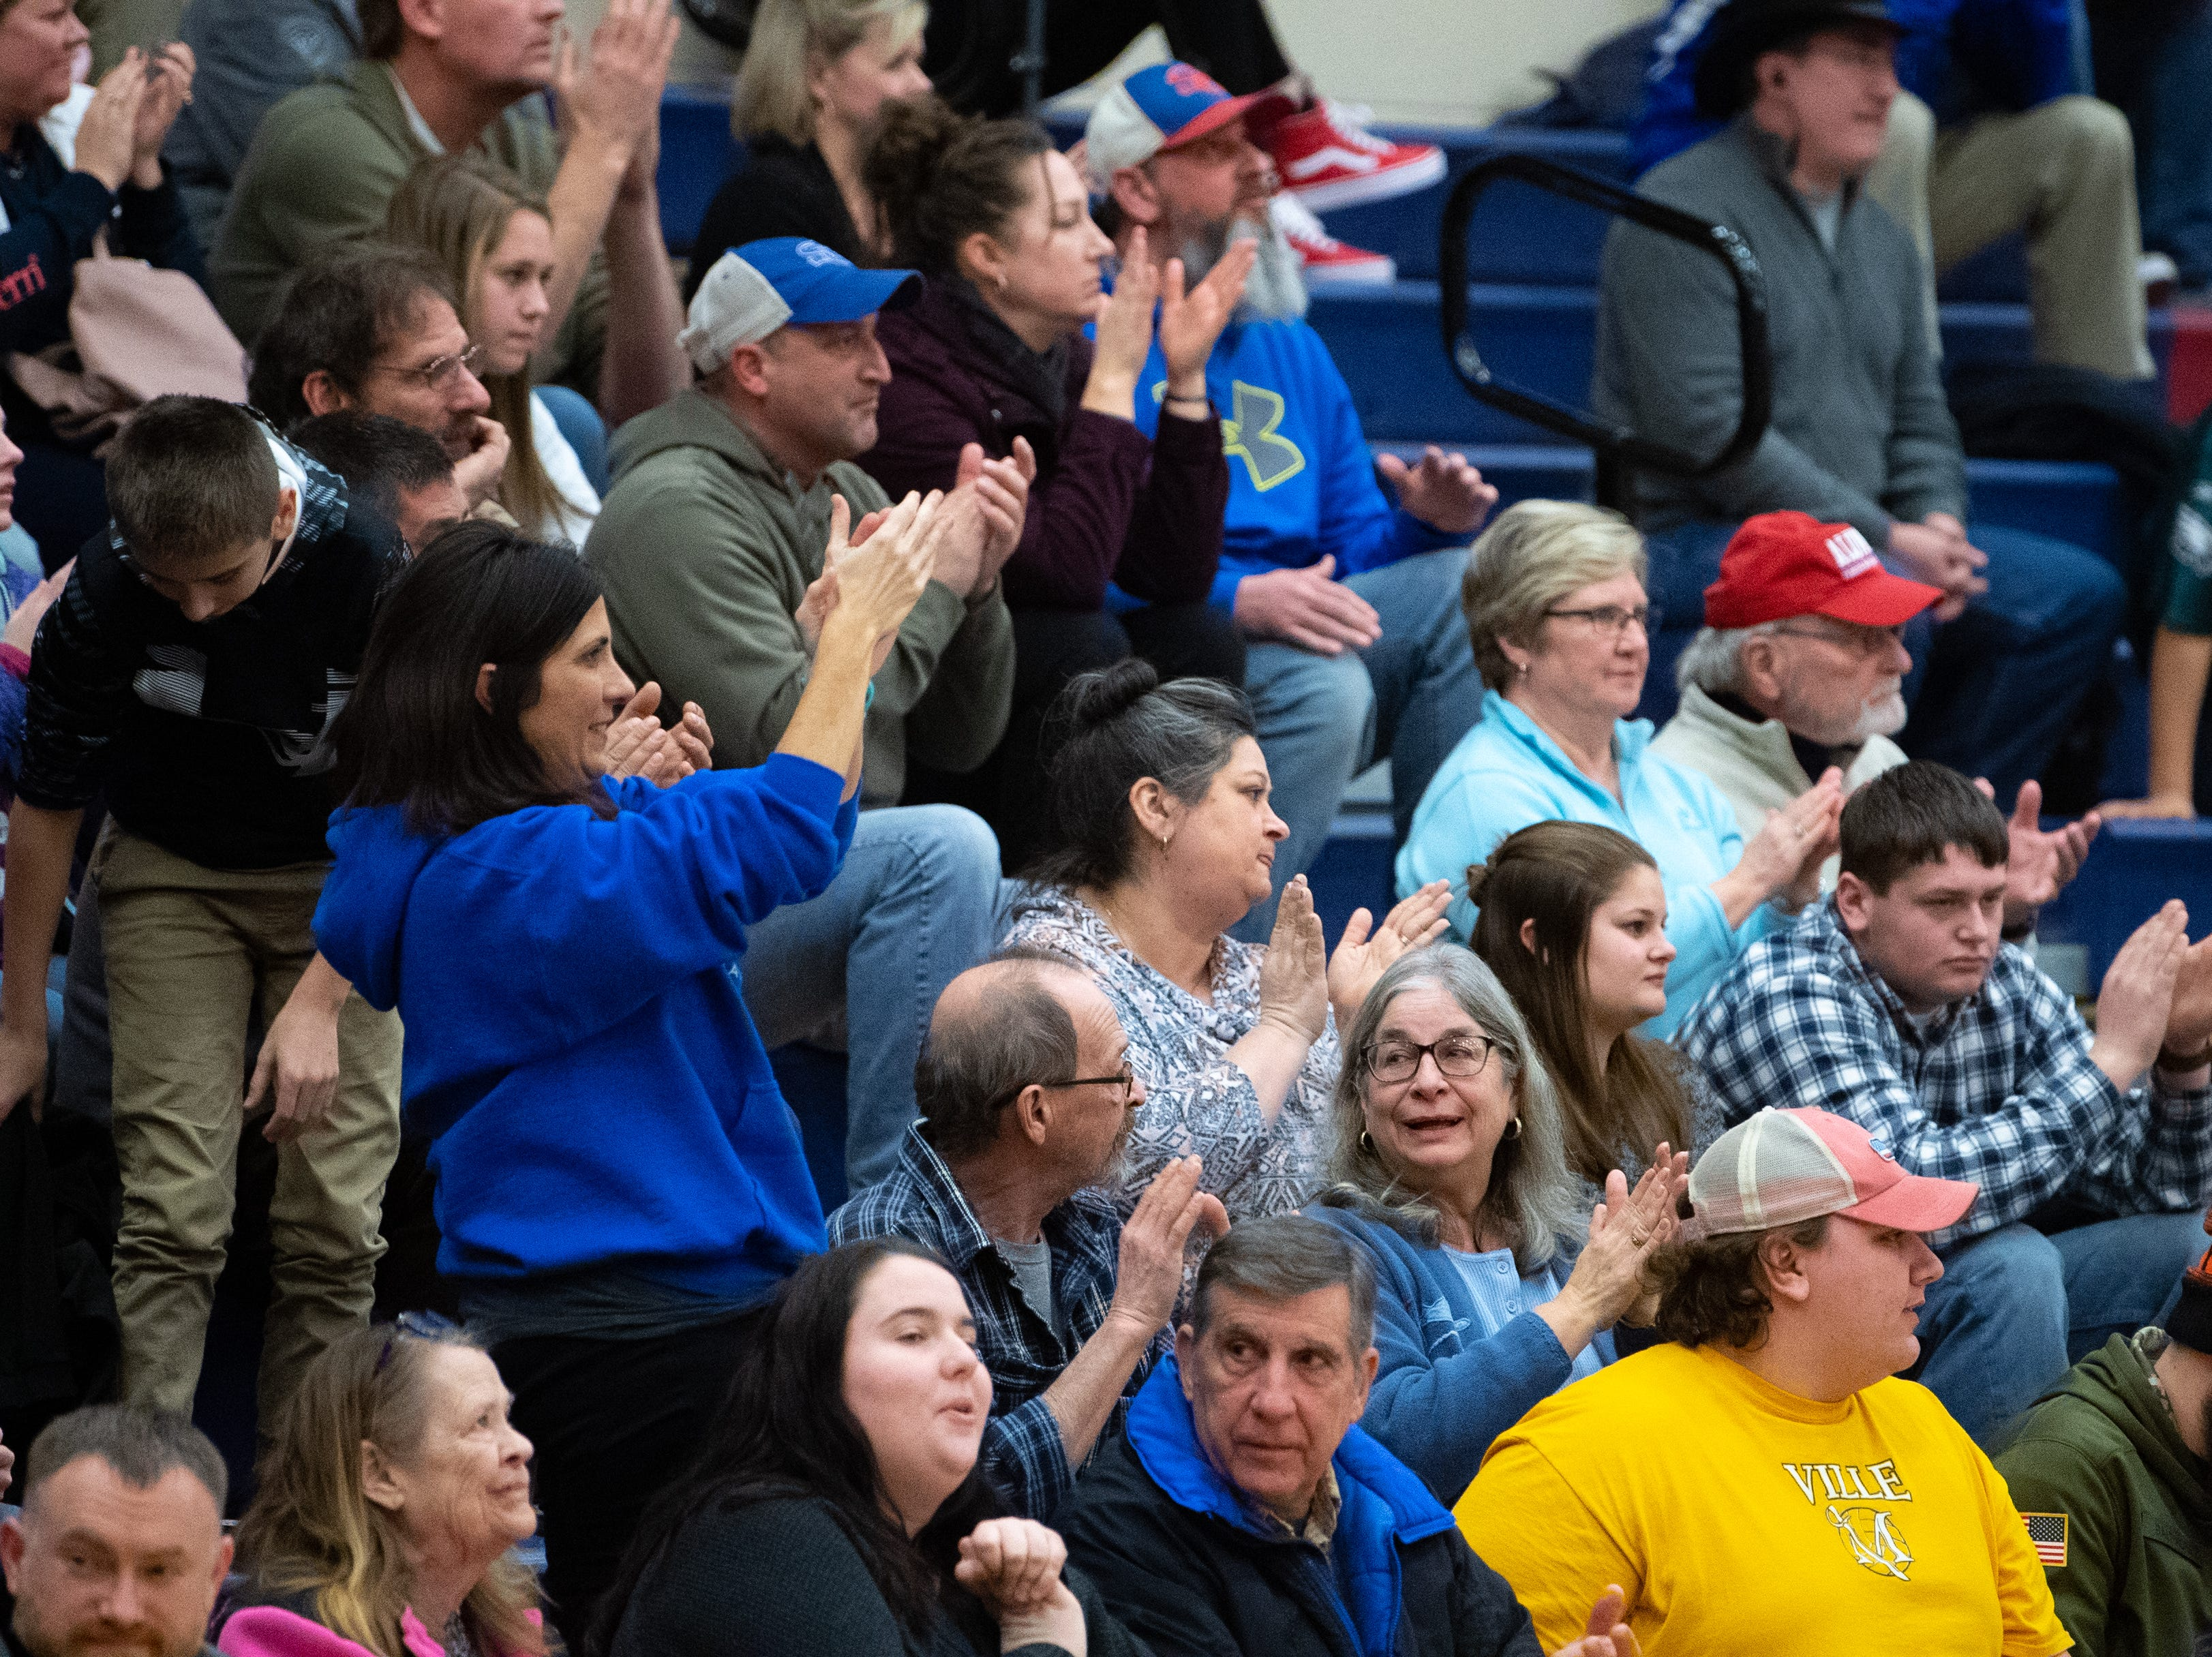 The stands were full during the girls' basketball game between Spring Grove and South Western at Spring Grove Area High School, Friday, January 11, 2019. The Rockets defeated the Mustangs 51 to 38.